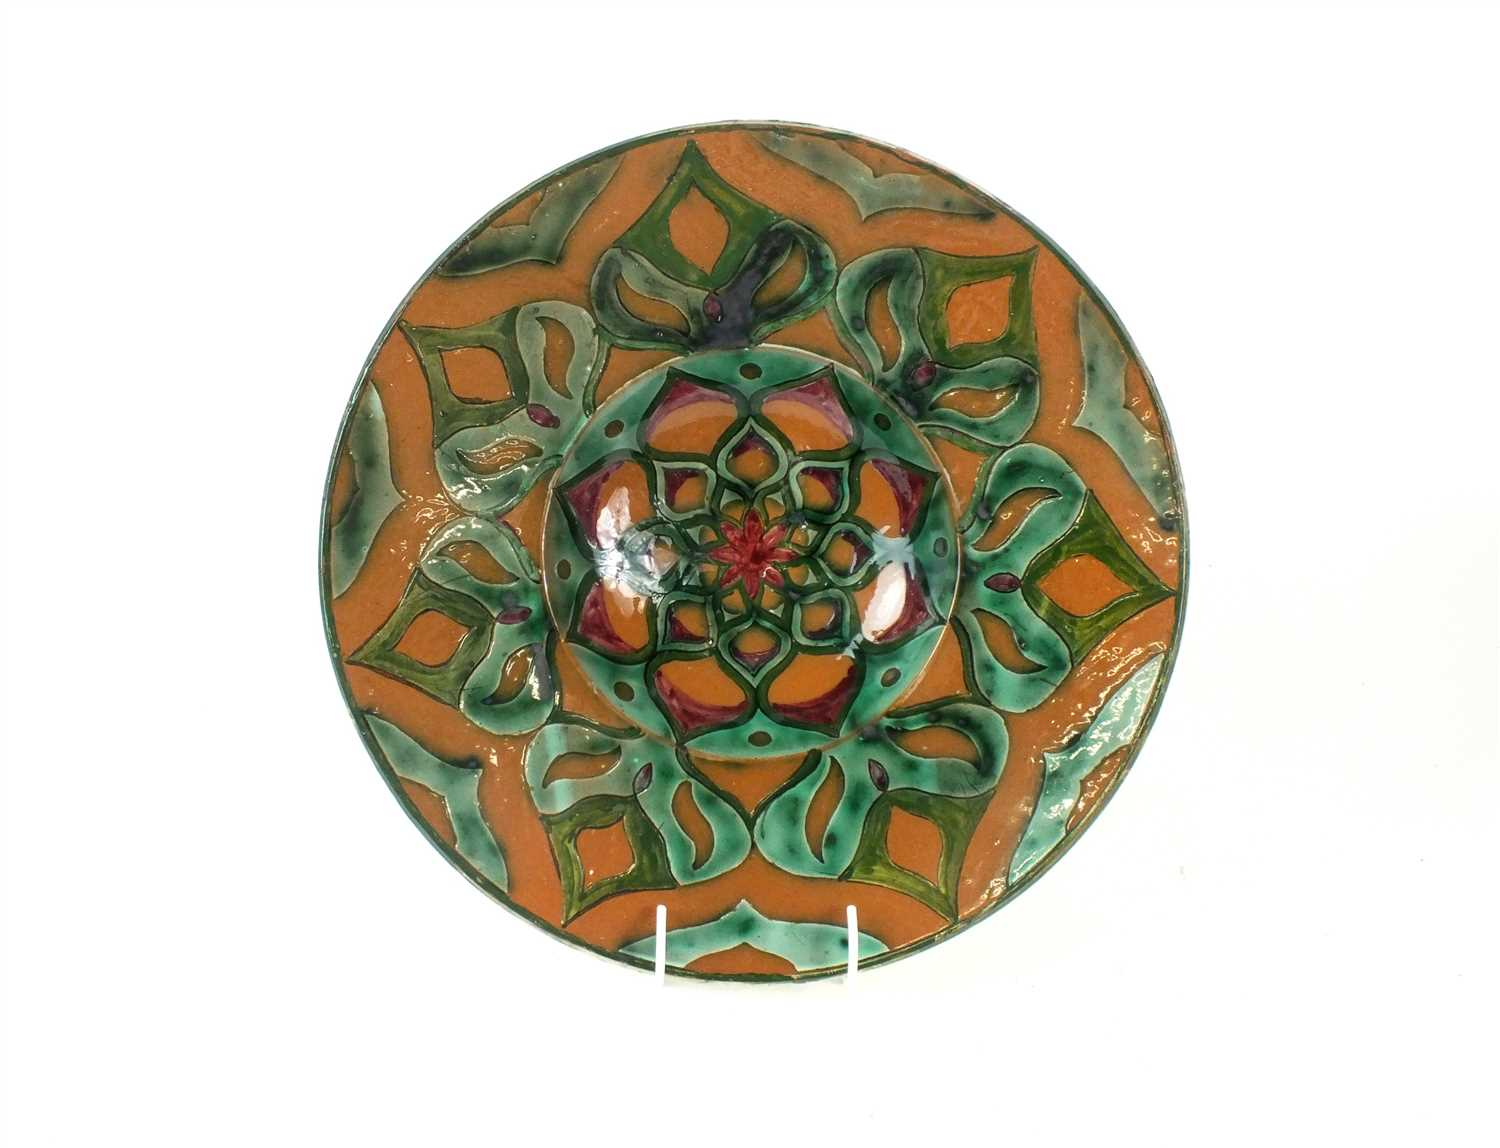 Lot 91-A Della Robbia Art Pottery charger by Liz Wilkins